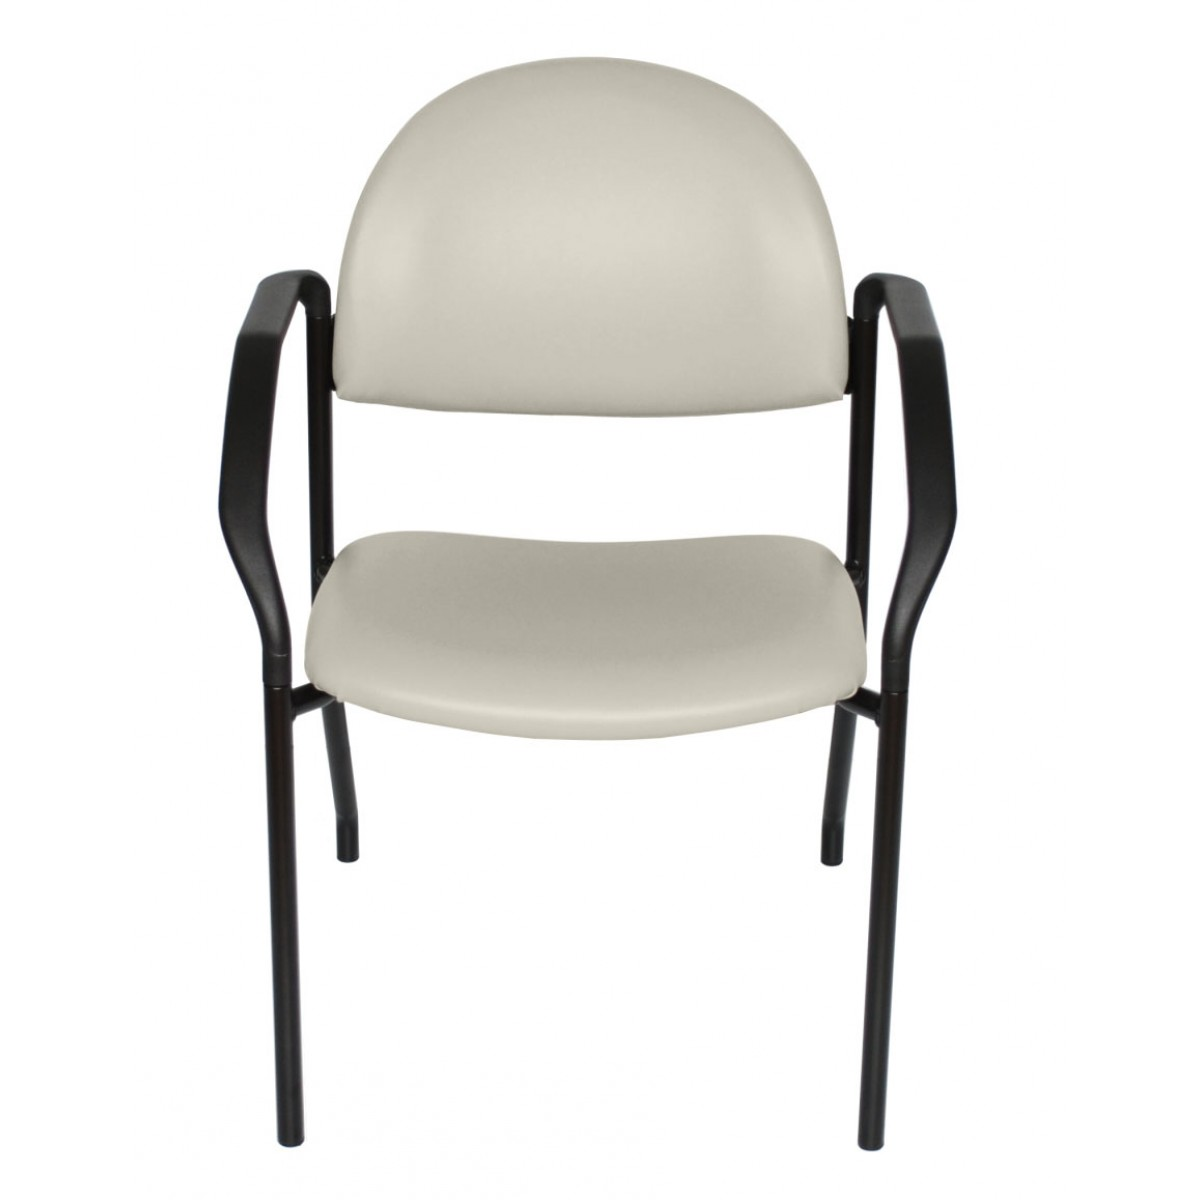 Exam Room Side Chair With Arms Office Chair Medical Side Chair